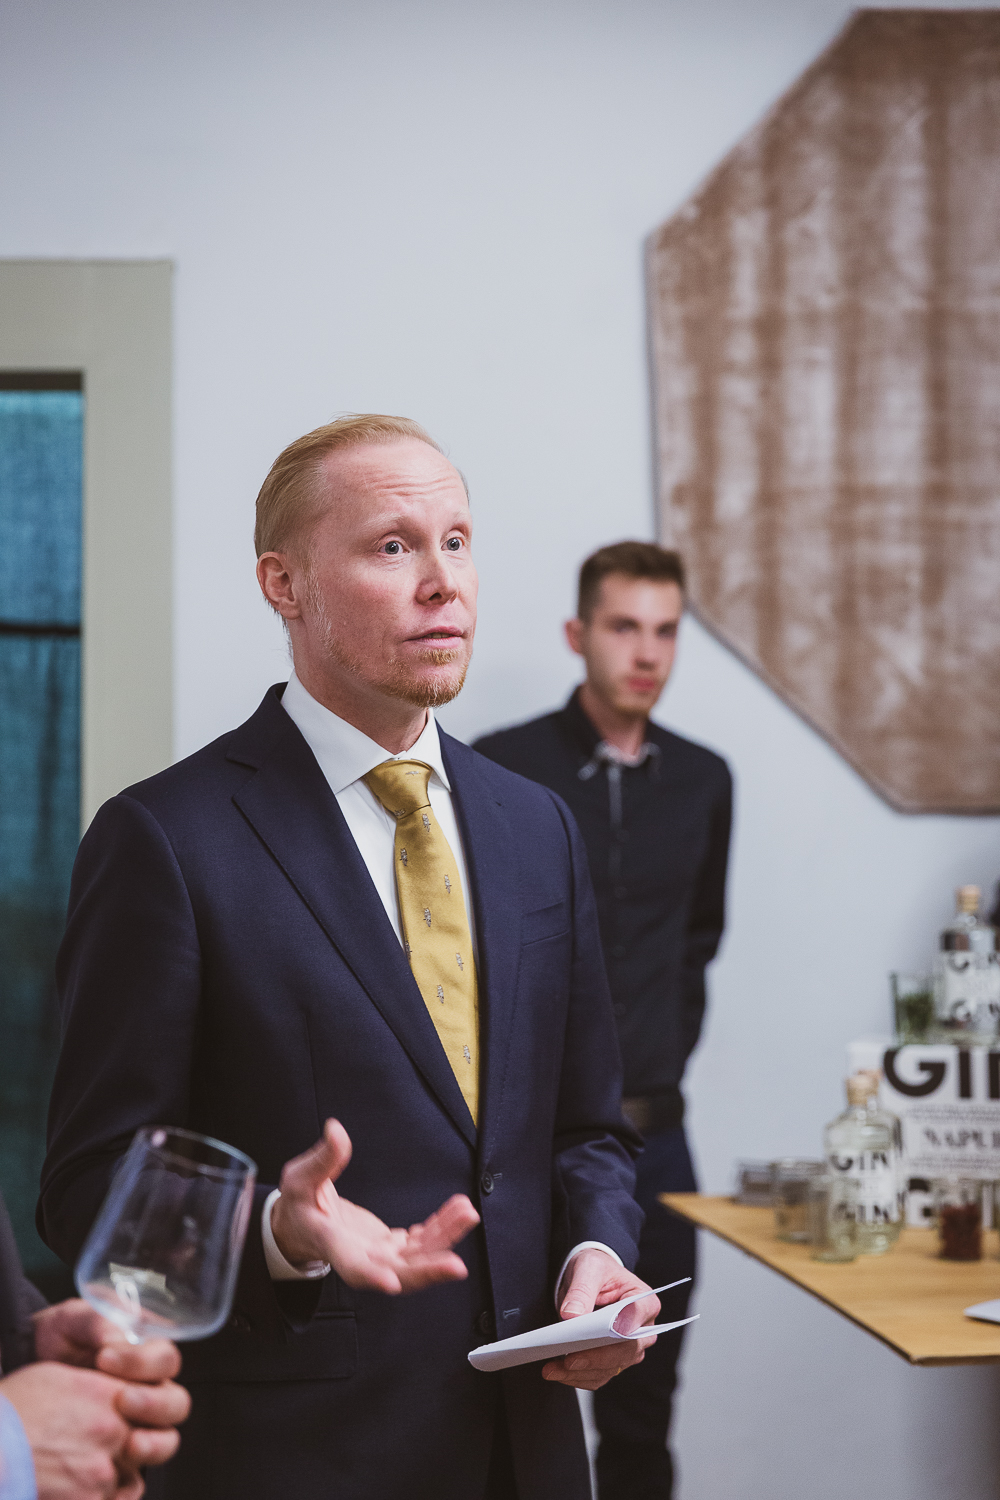 2018-VALISE-Glint-LifestyleFinland-EveningVernissage-webres-7610.jpg